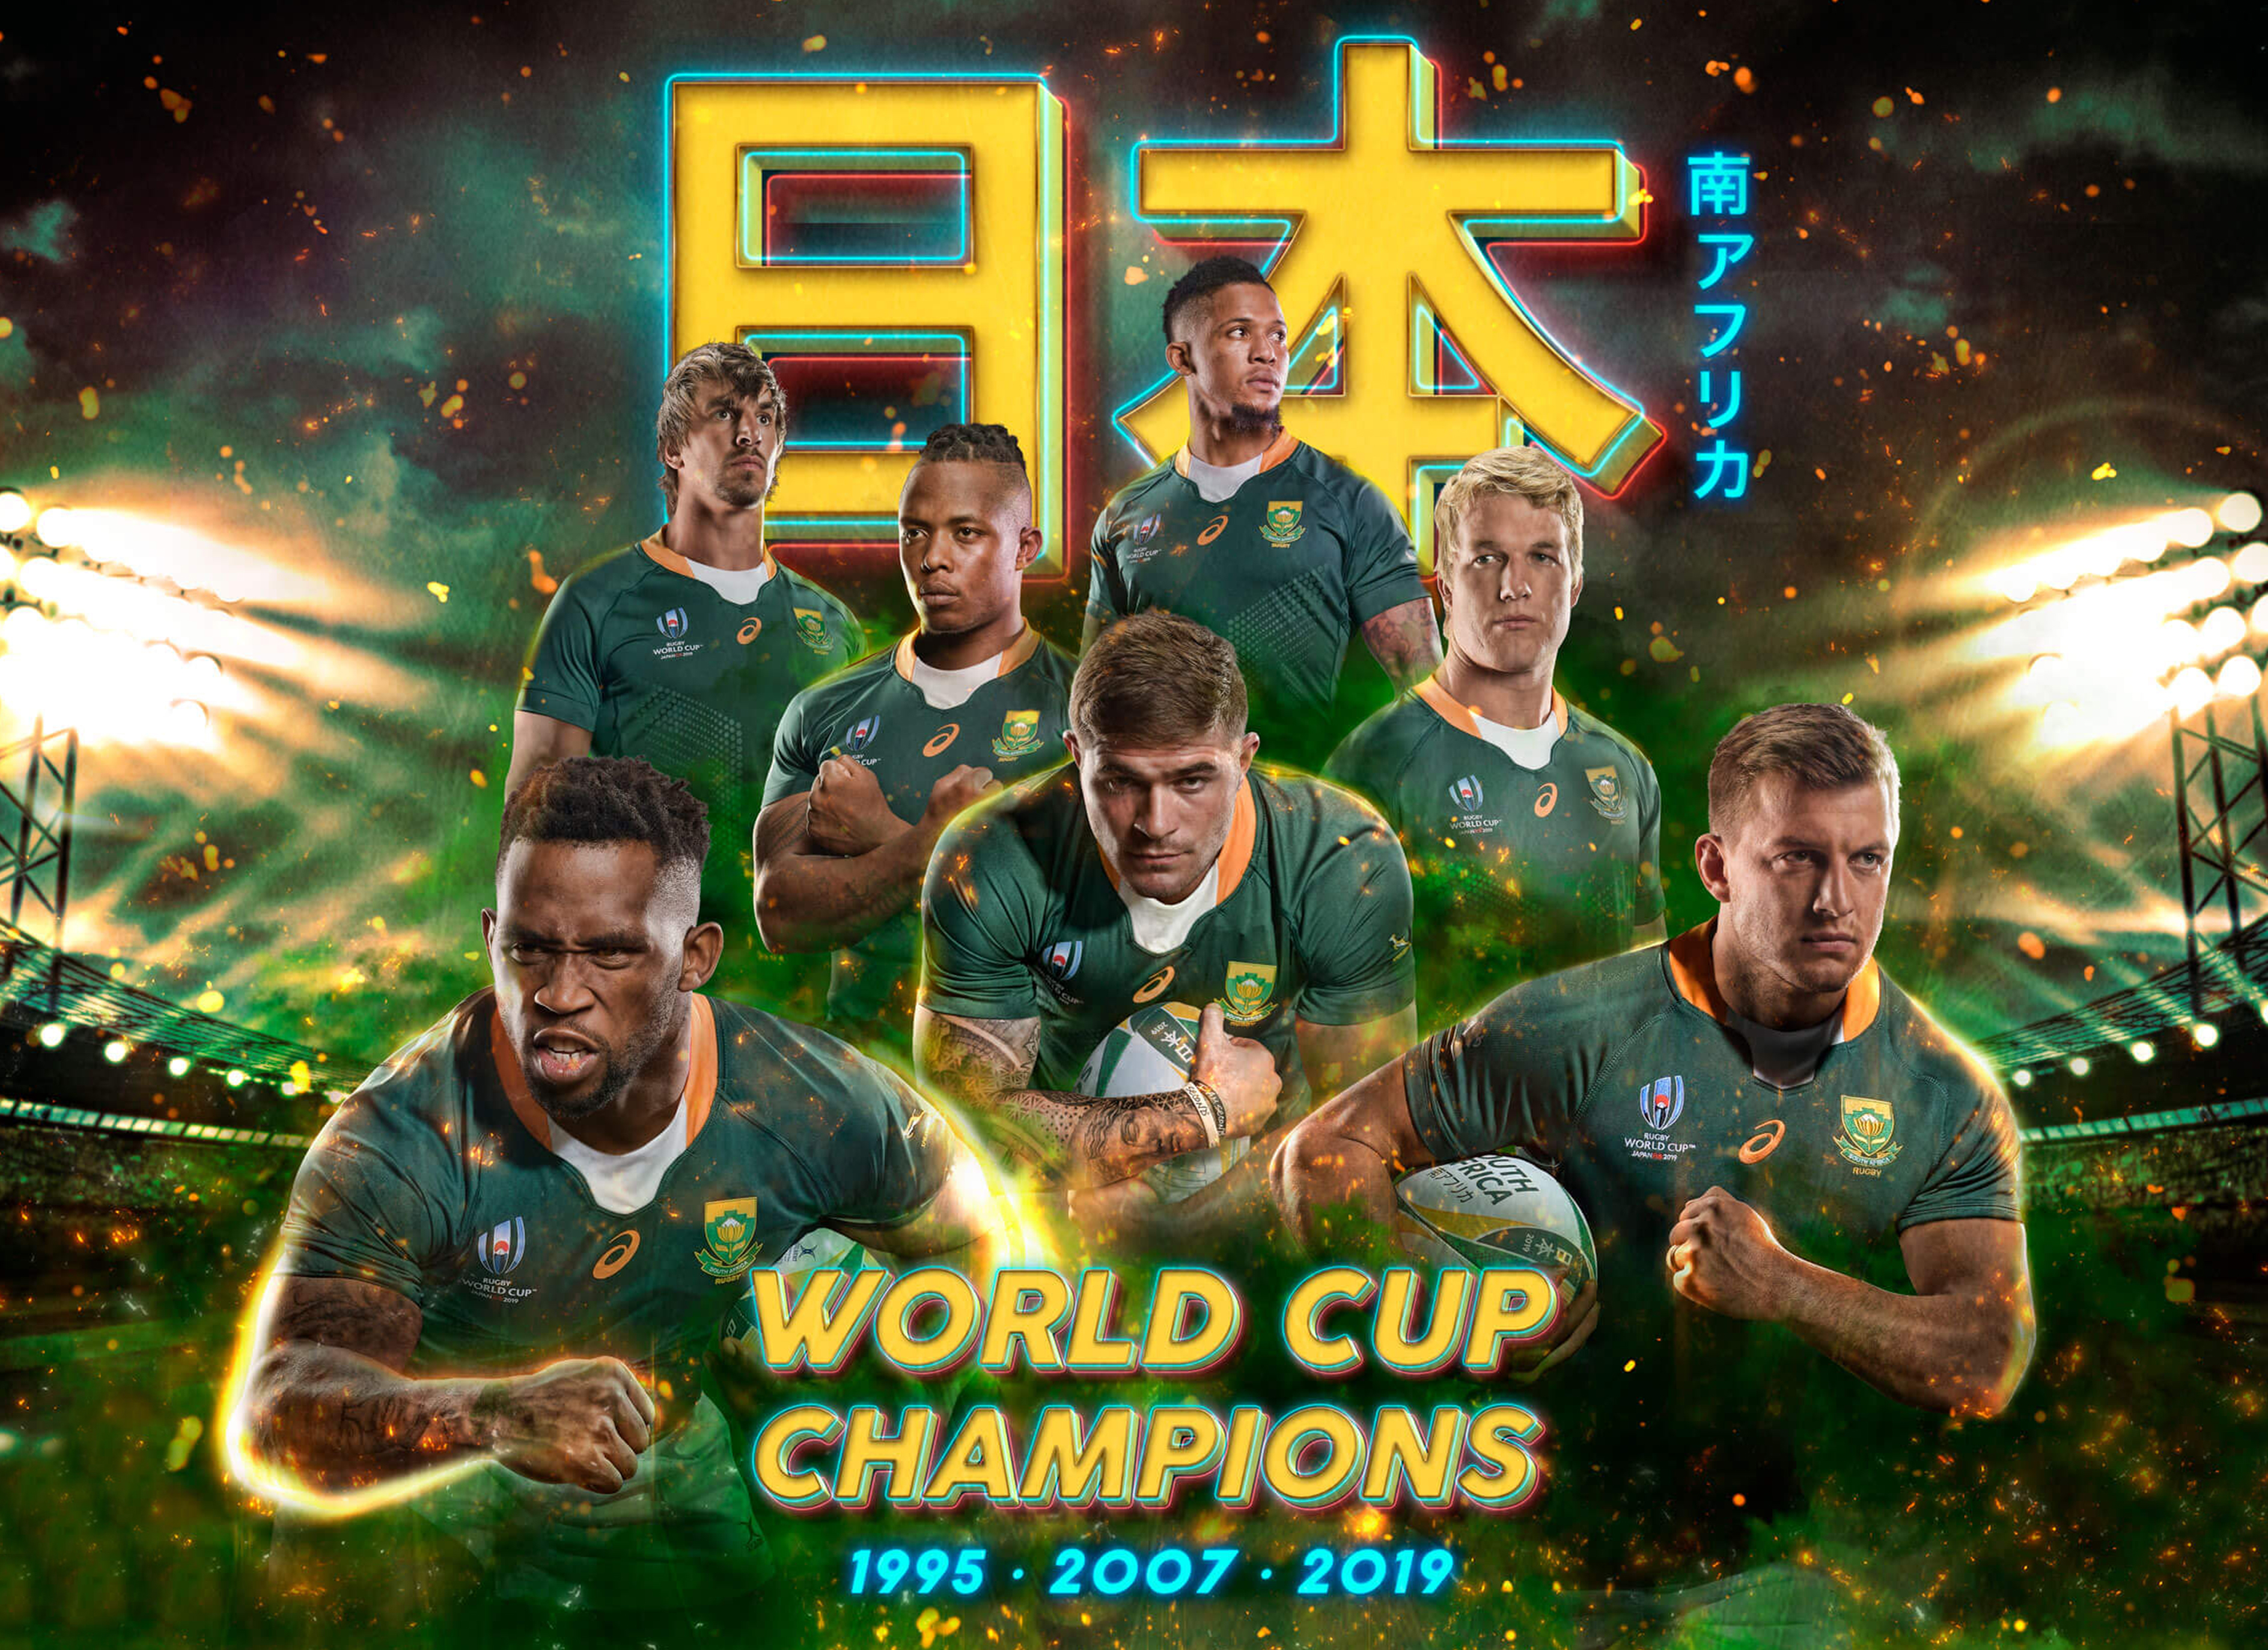 rugby-worldcup-2019-south-africa-champions-brandon-barnard-photography-group-composition.jpg